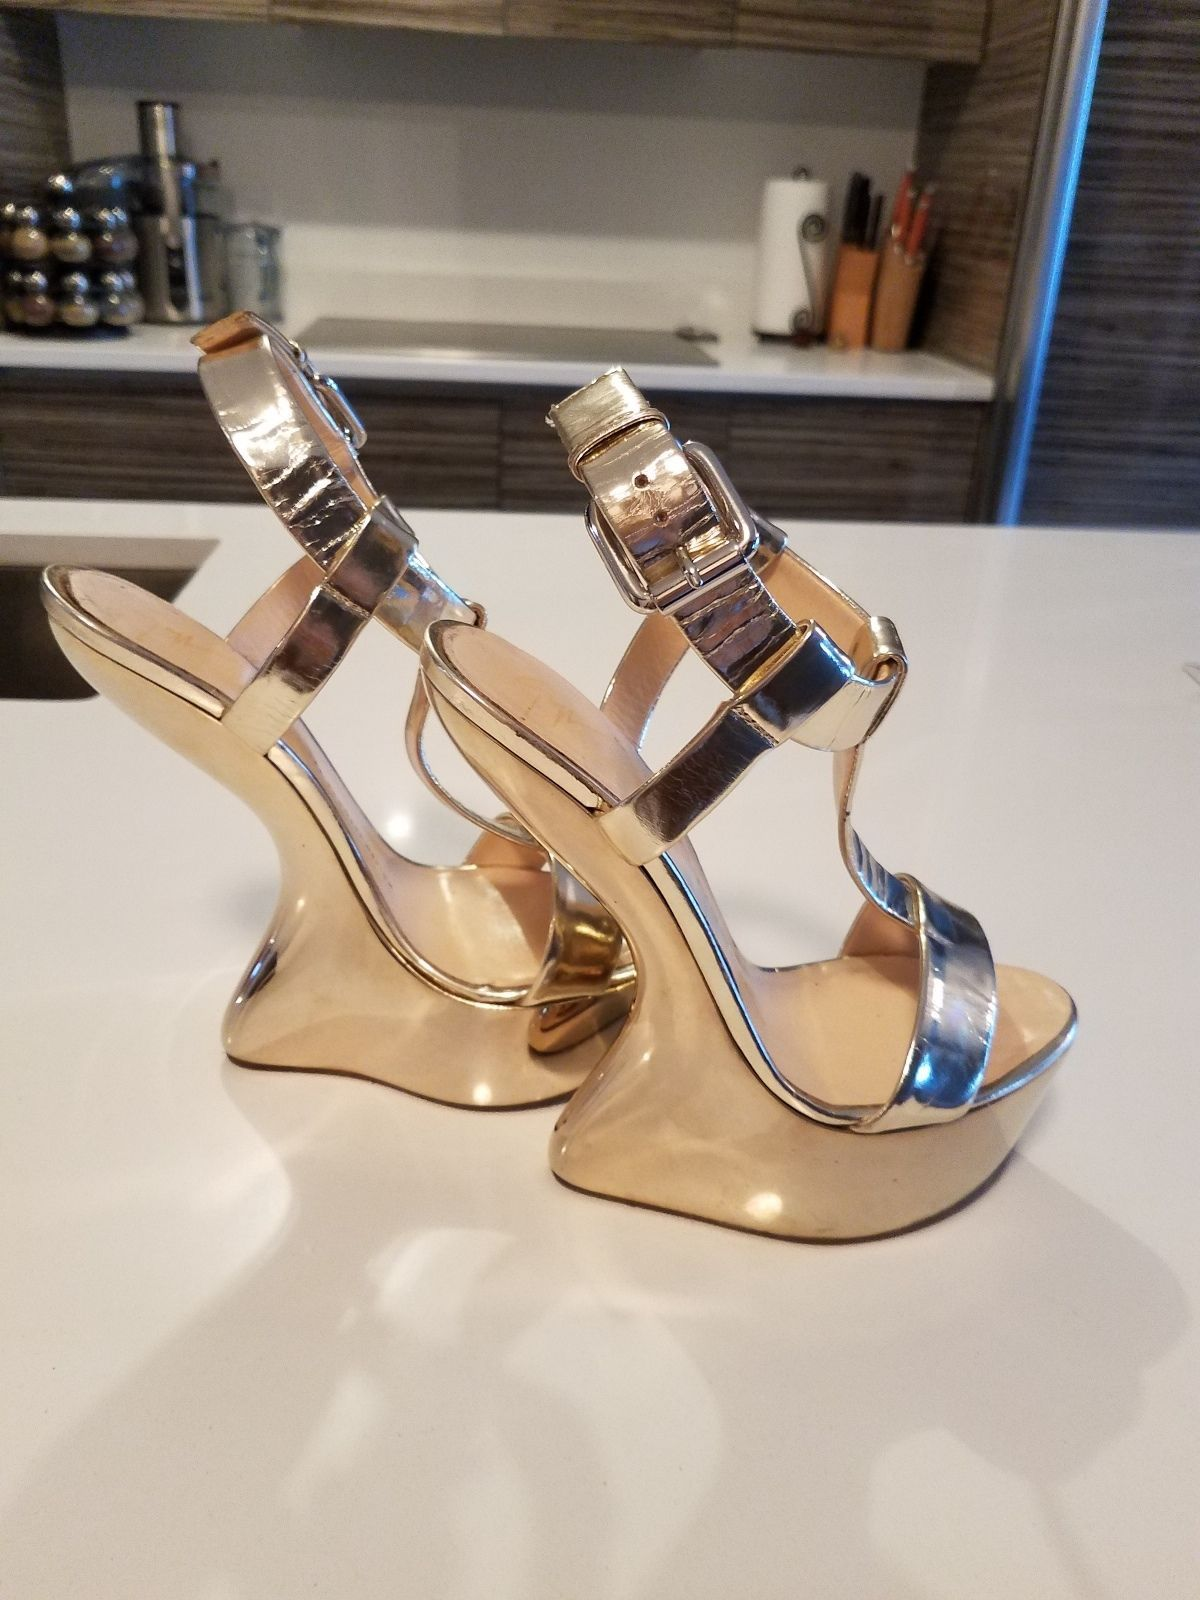 19f323d05529 Pre-owned Giuseppe Zanotti gold mirrored heels platform wedge sandals in  decent used condition. Size 38.5   dustbag included.